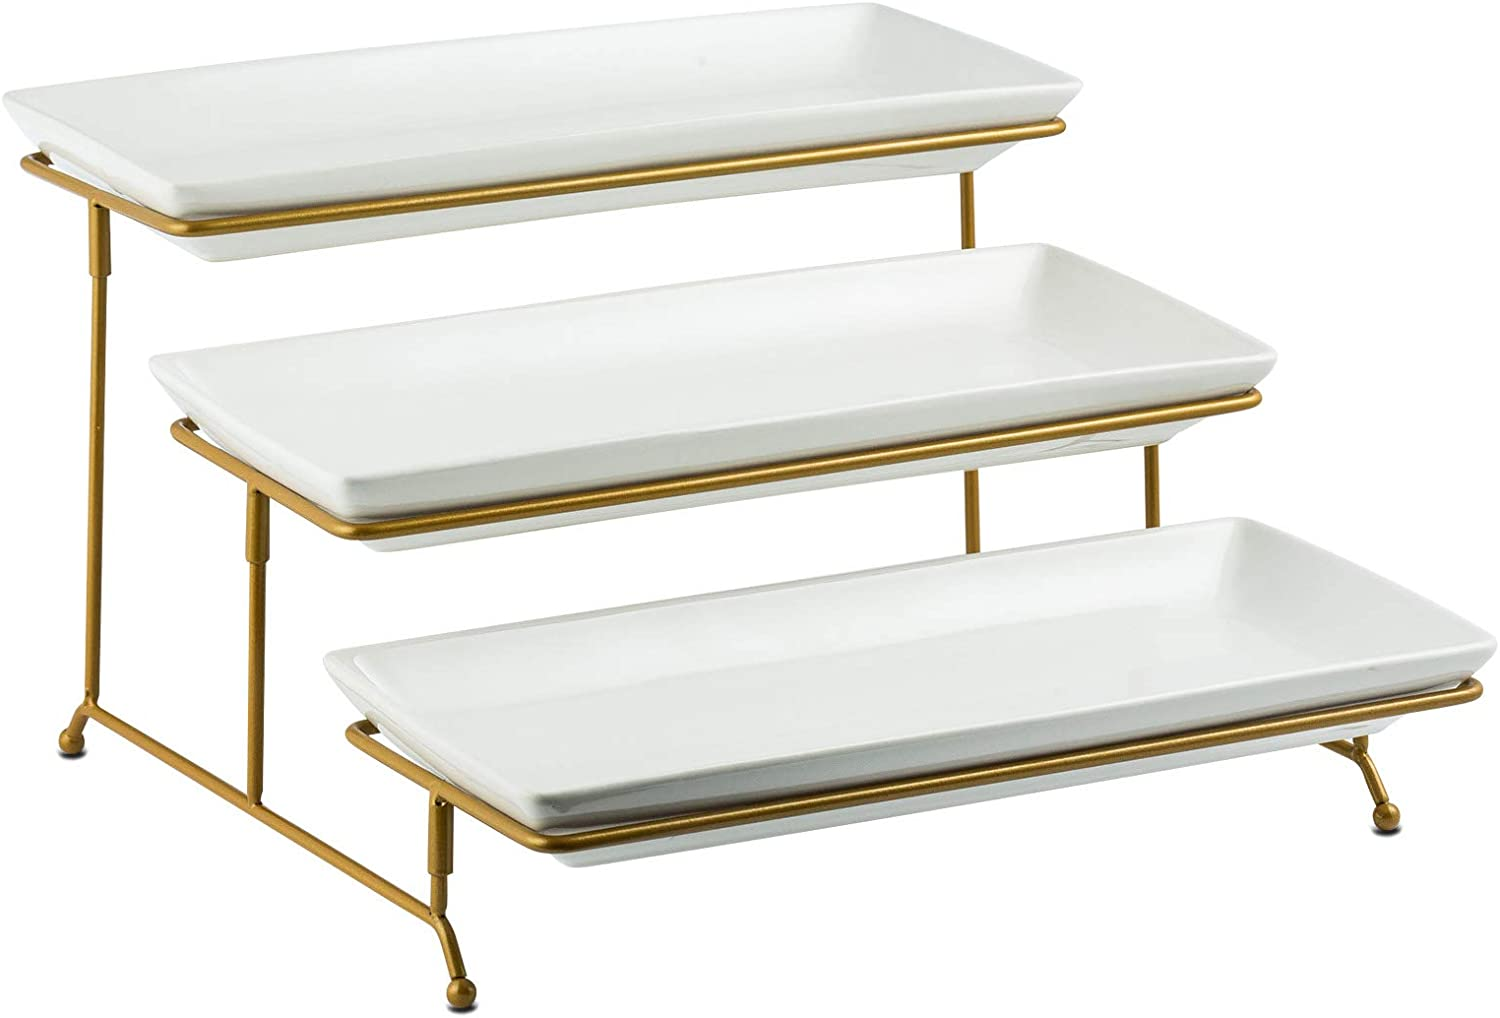 Large Tiered Serving Stand with Platters 3 Tier Serving Stand Serving Tray for For Dessert Server Display Collapsible Sturdier Metal Rack